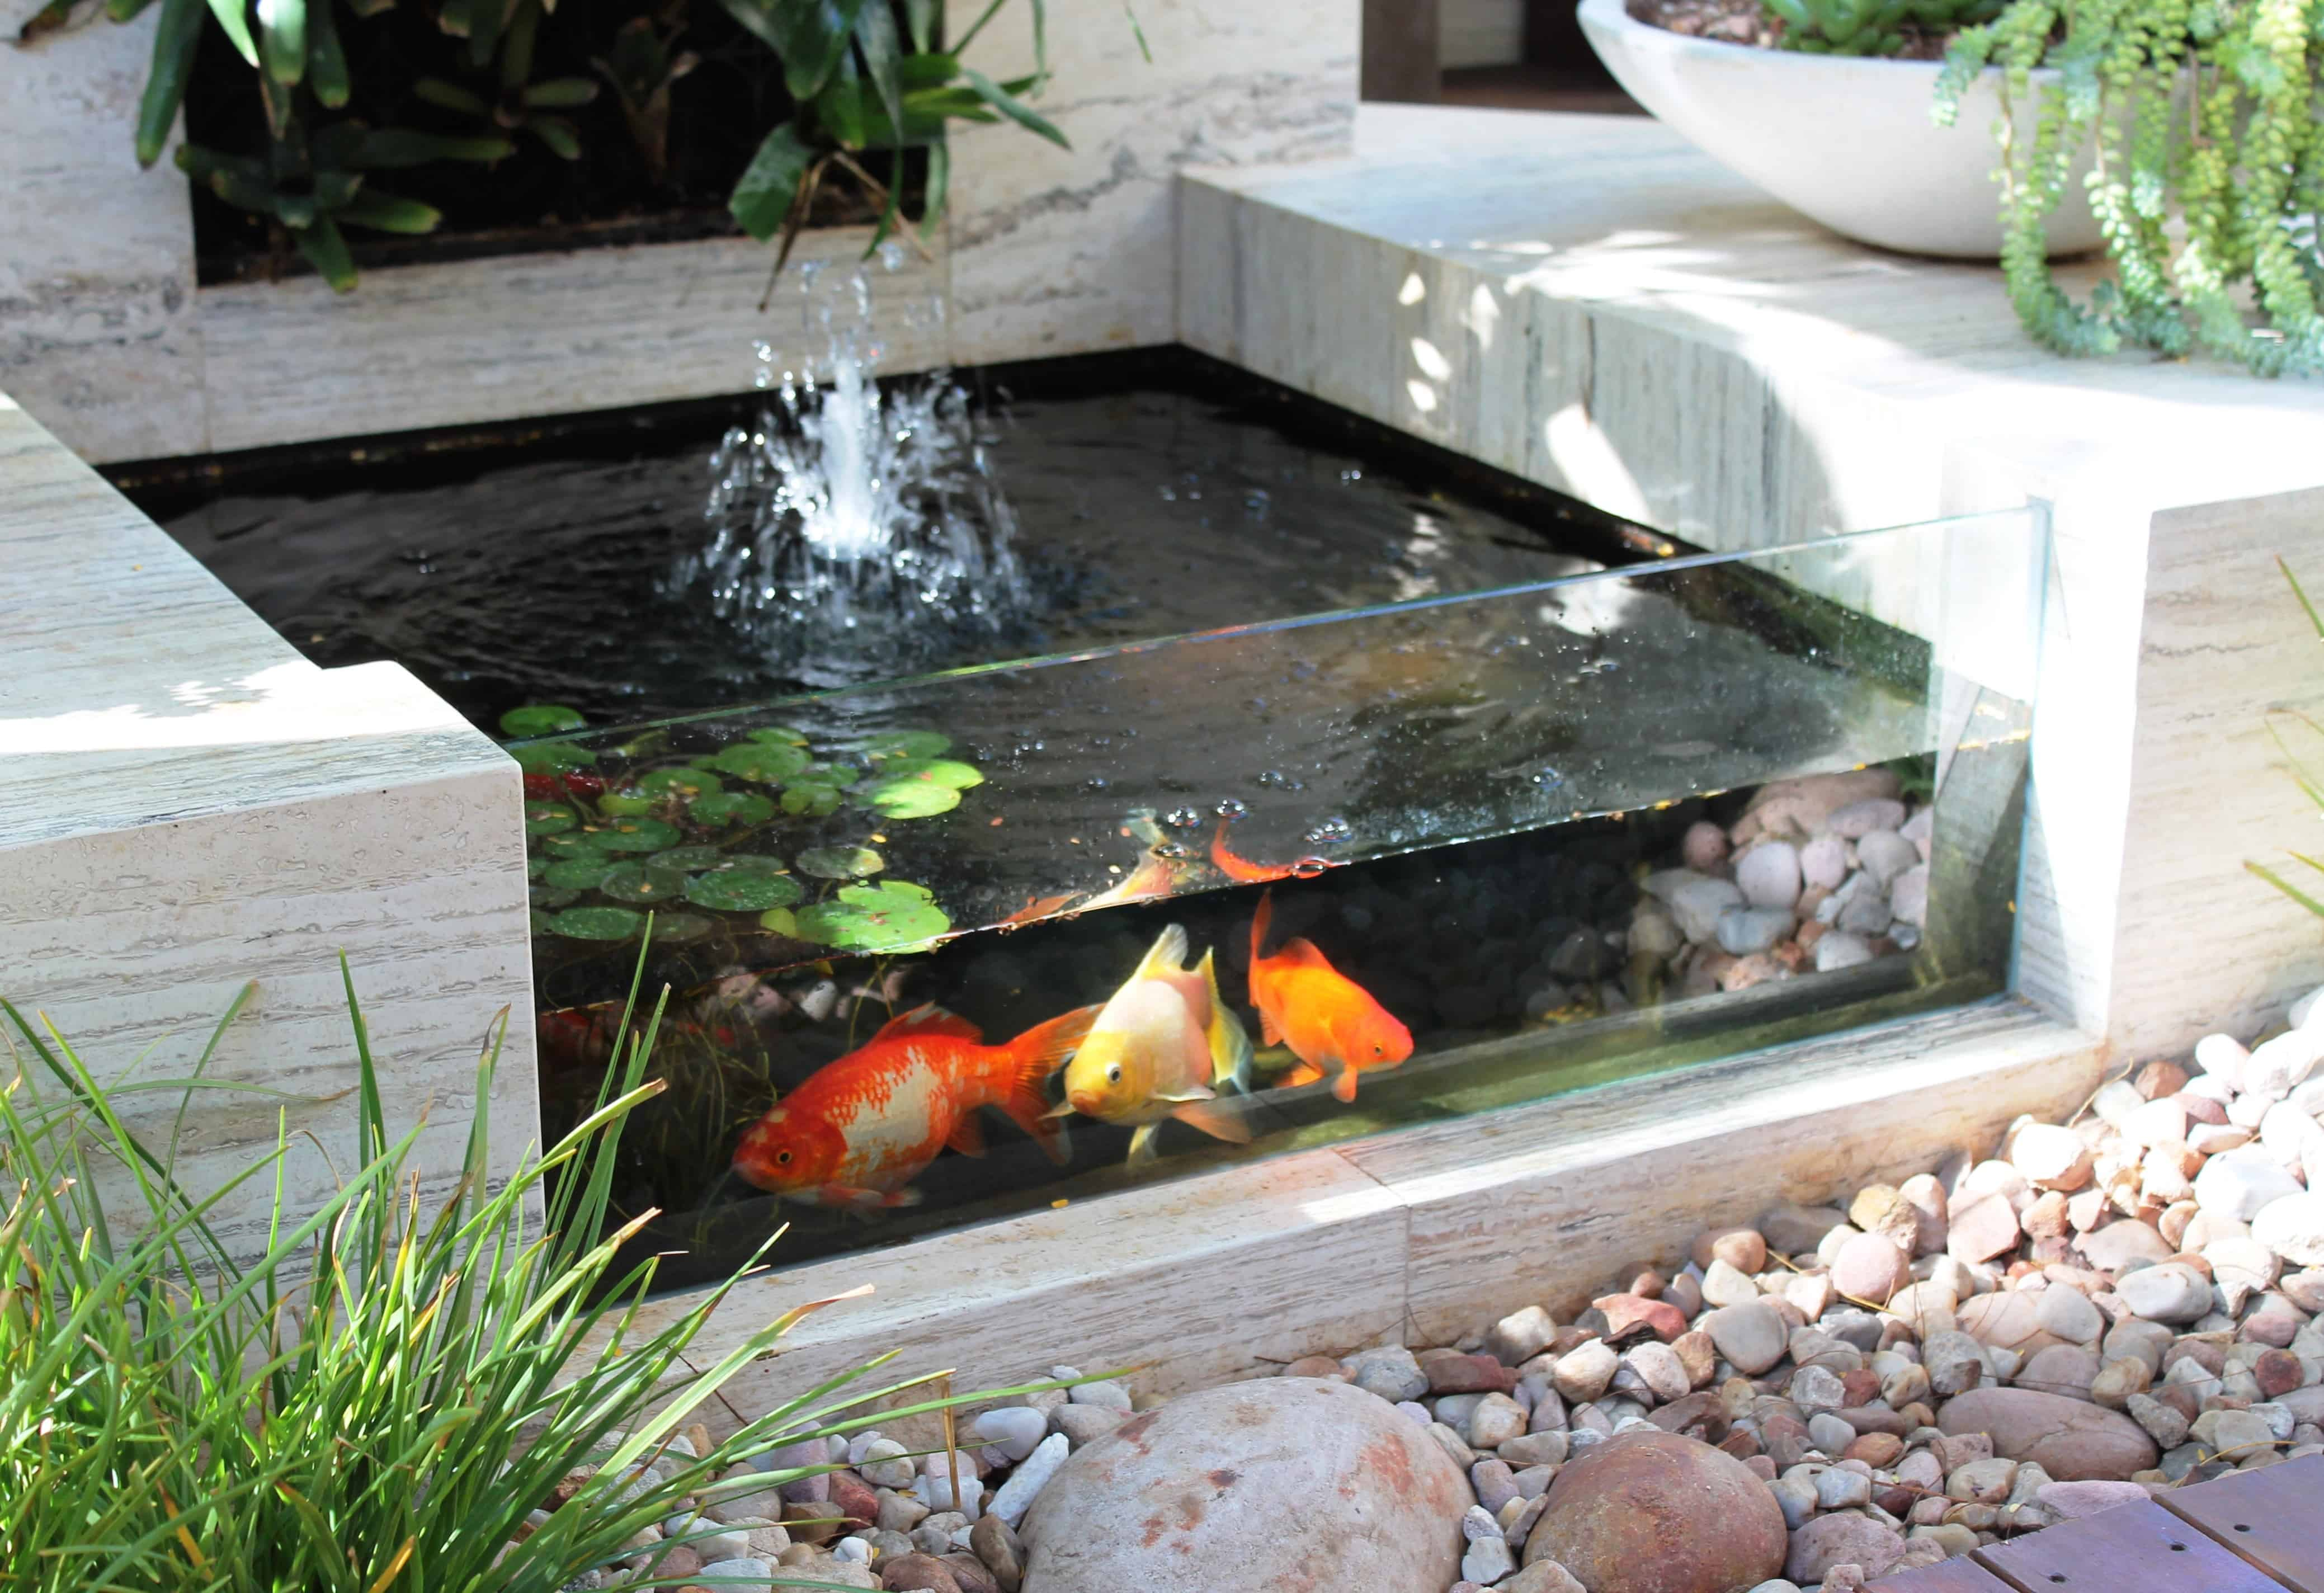 35 Sublime Koi Pond Designs and Water Garden Ideas for ... on Backyard Koi Pond Designs  id=90777